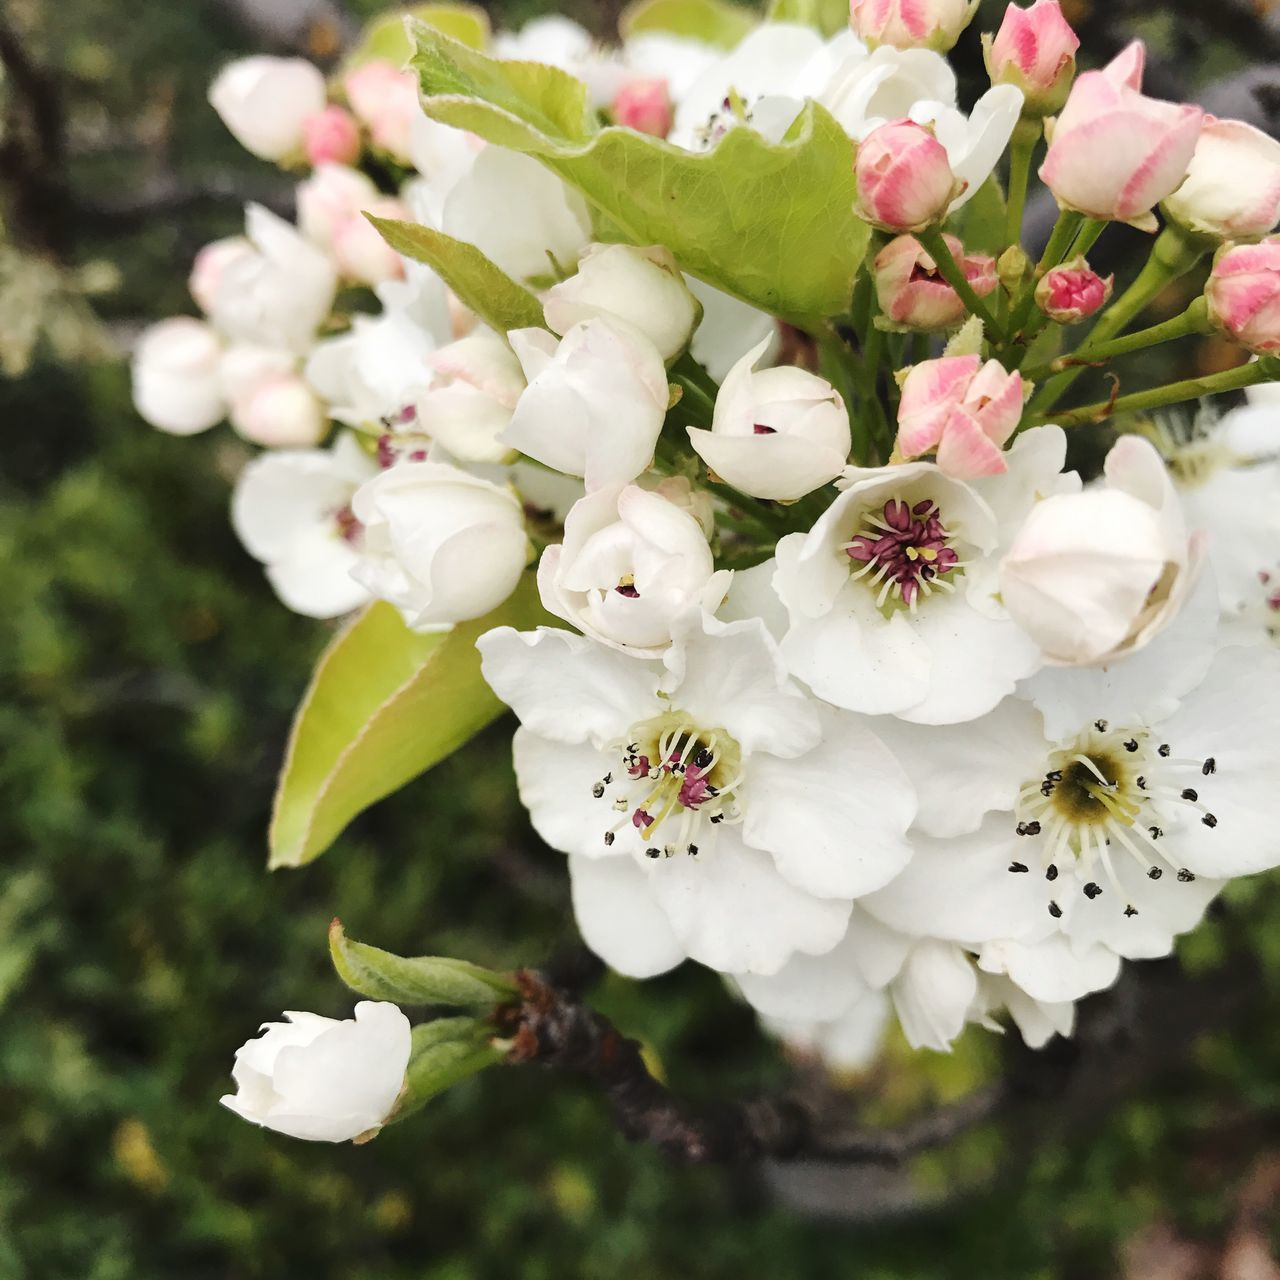 Flower Nature Growth Beauty In Nature Fragility Freshness Petal Flower Head Blossom Springtime White Blossoms Pink Blossoms Ashland, OR Green Tones